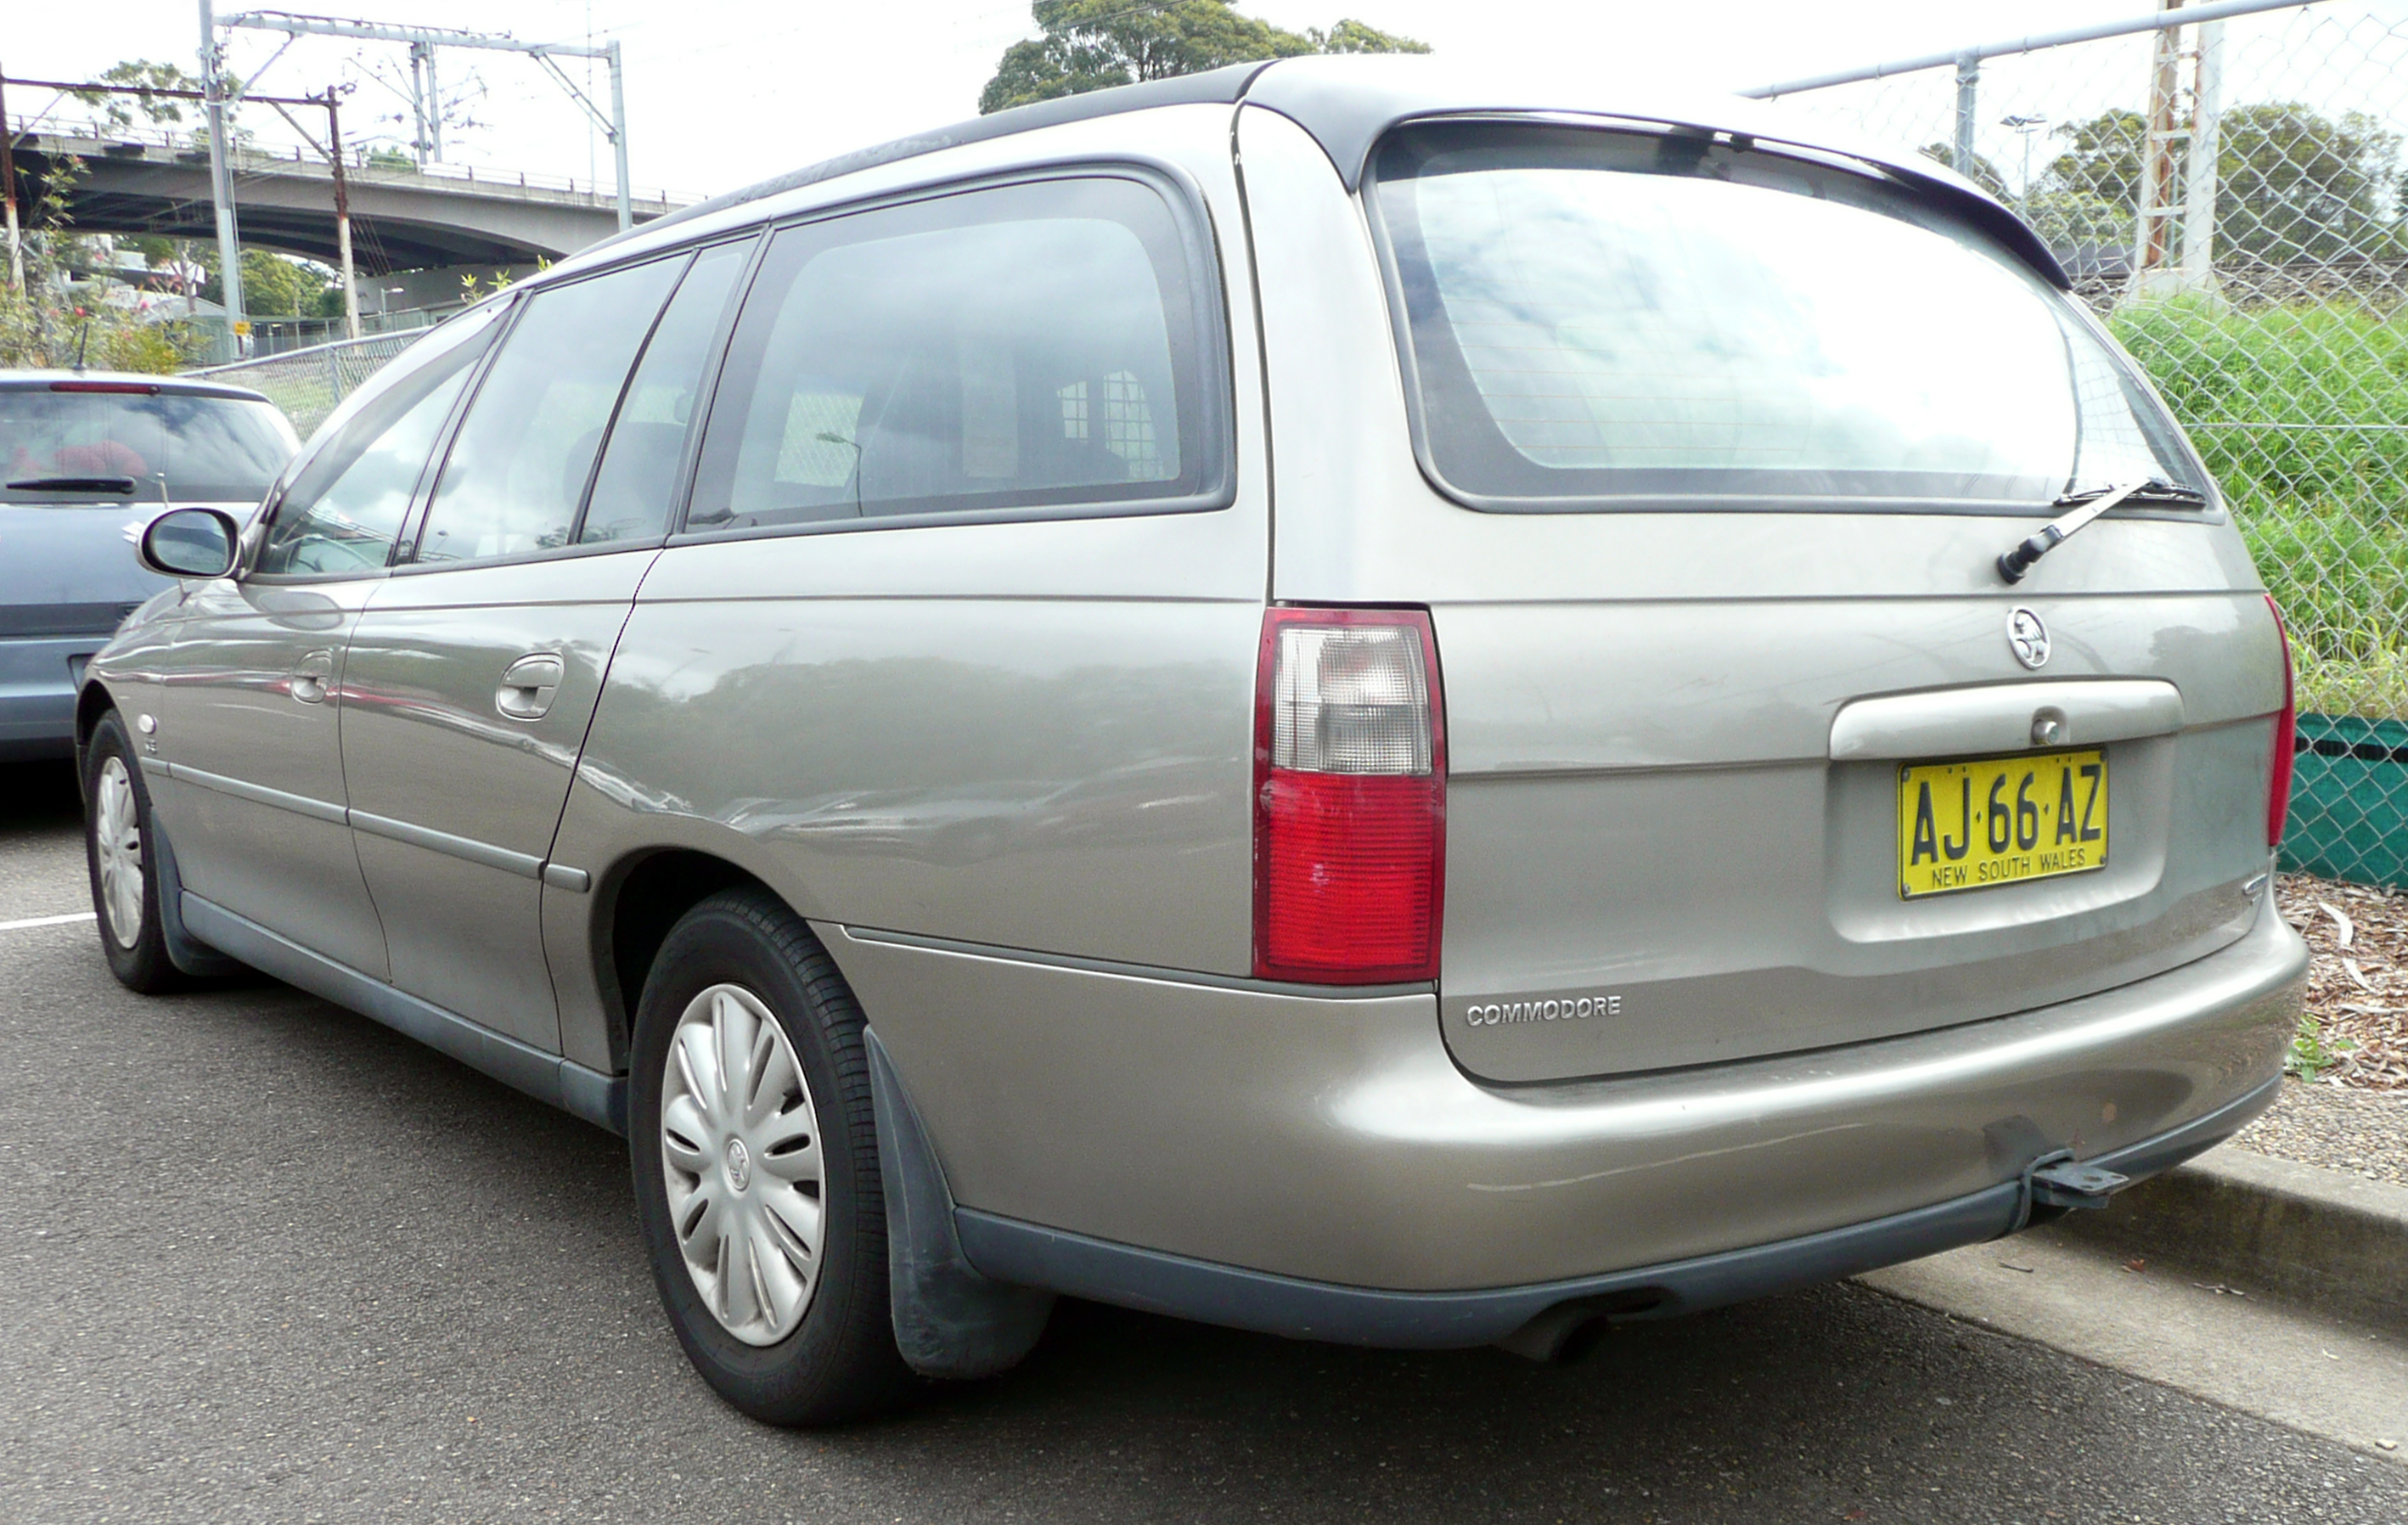 holden commodore wagon (vt) 1999 images #7